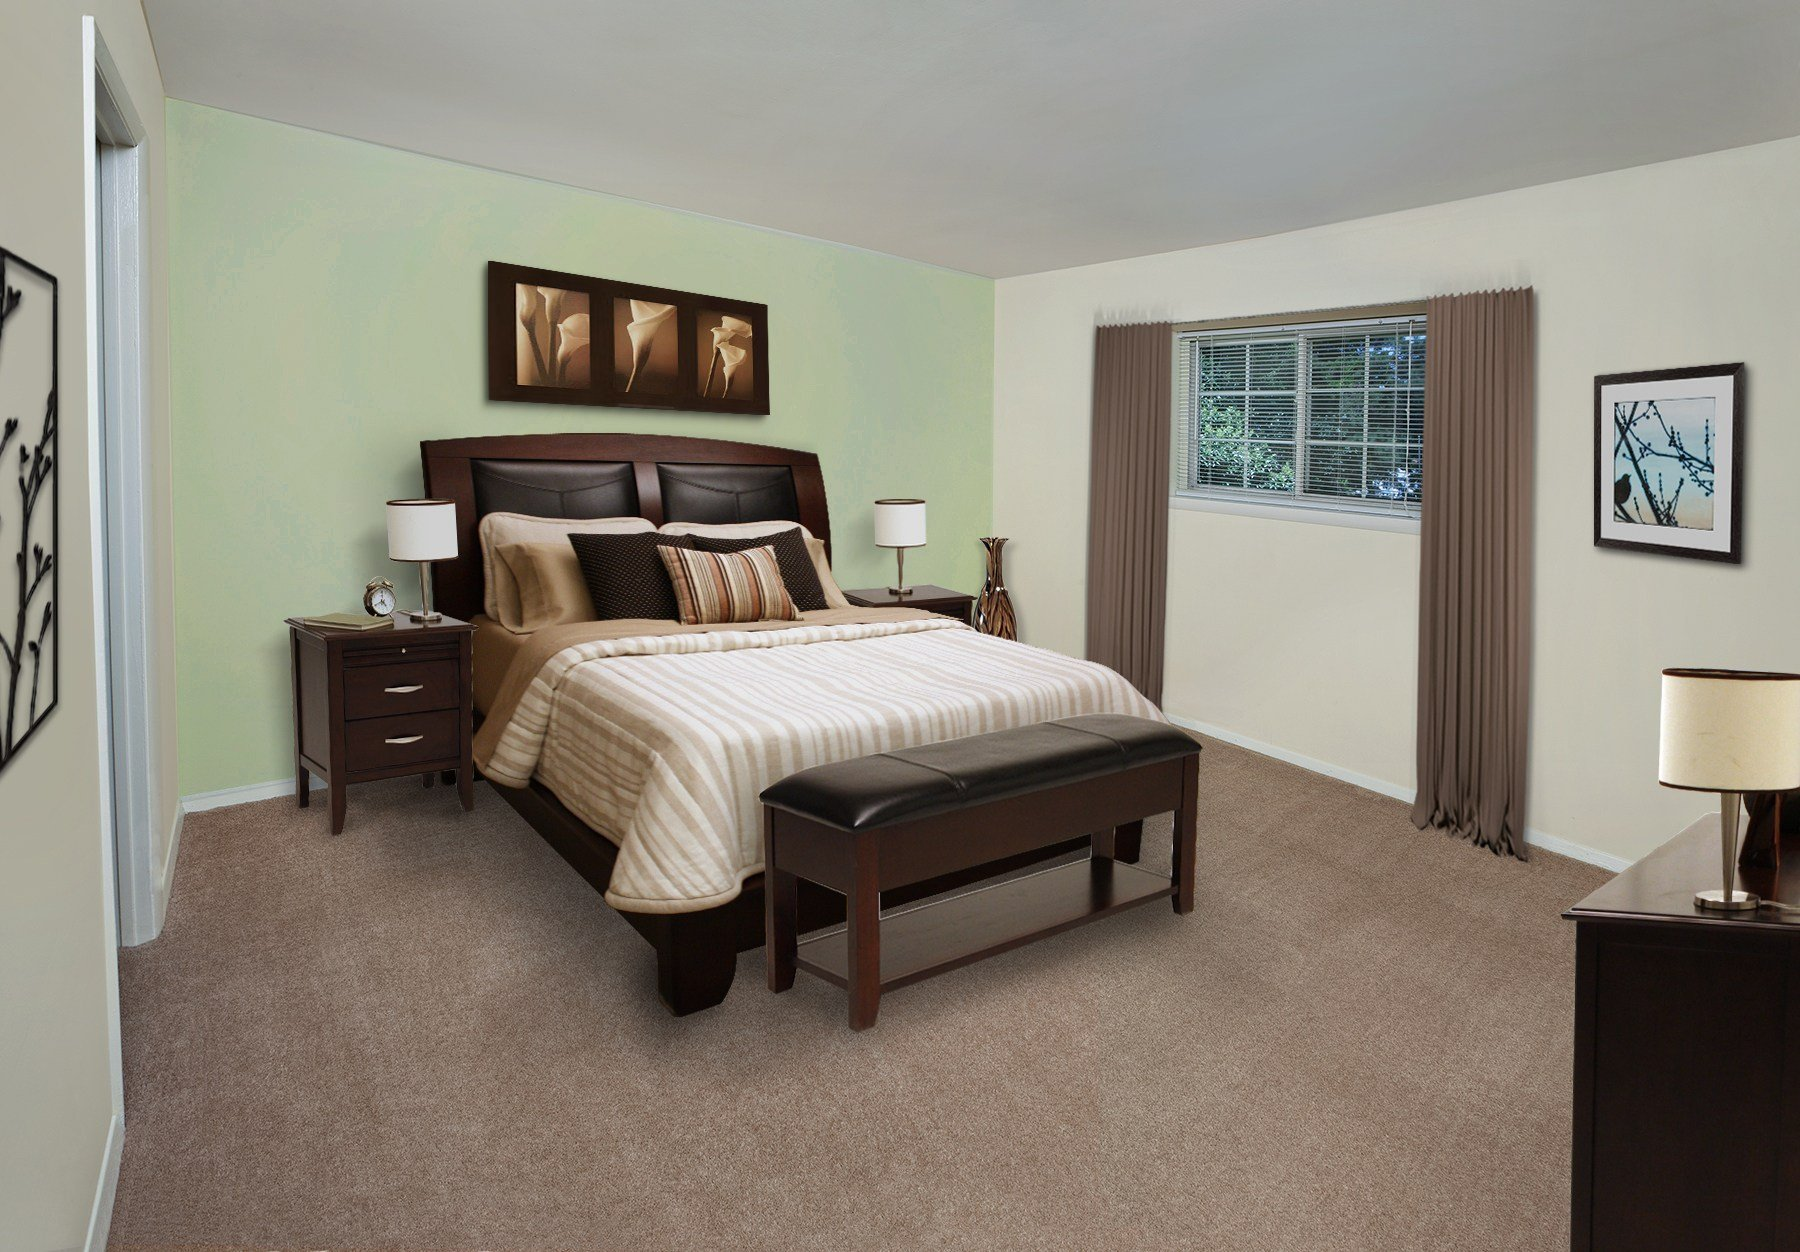 Best One Bedroom Apartments In Newport News Va Design For Home With Pictures